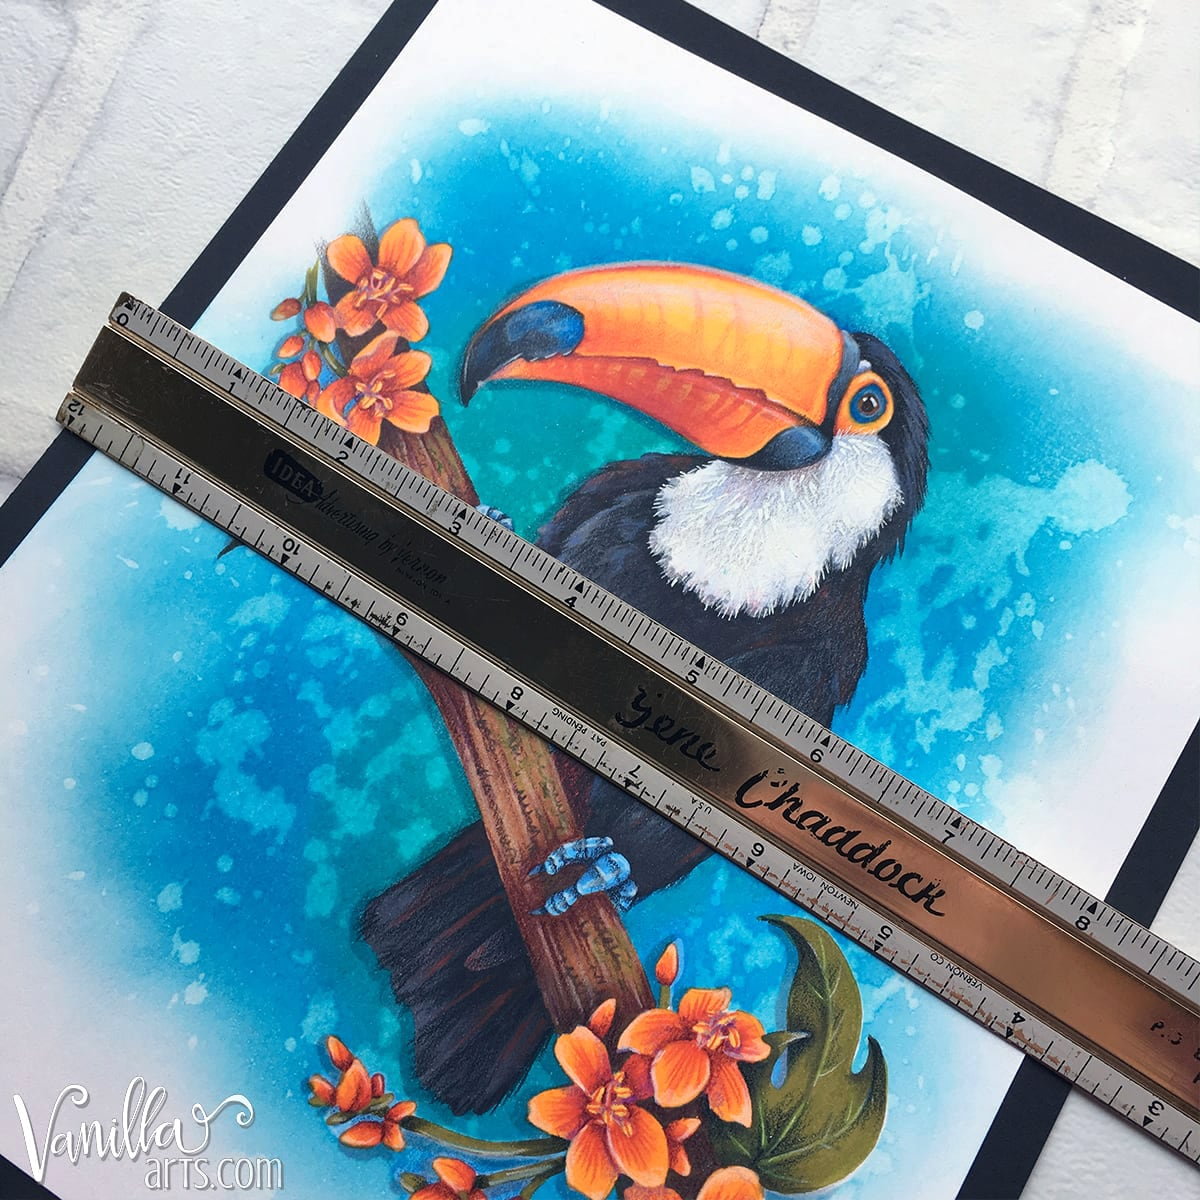 Copic Markers: Different projects require different techniques. At 7 x 7 inches, this toucan is not card sized. What works at card scale rarely works on larger designs.